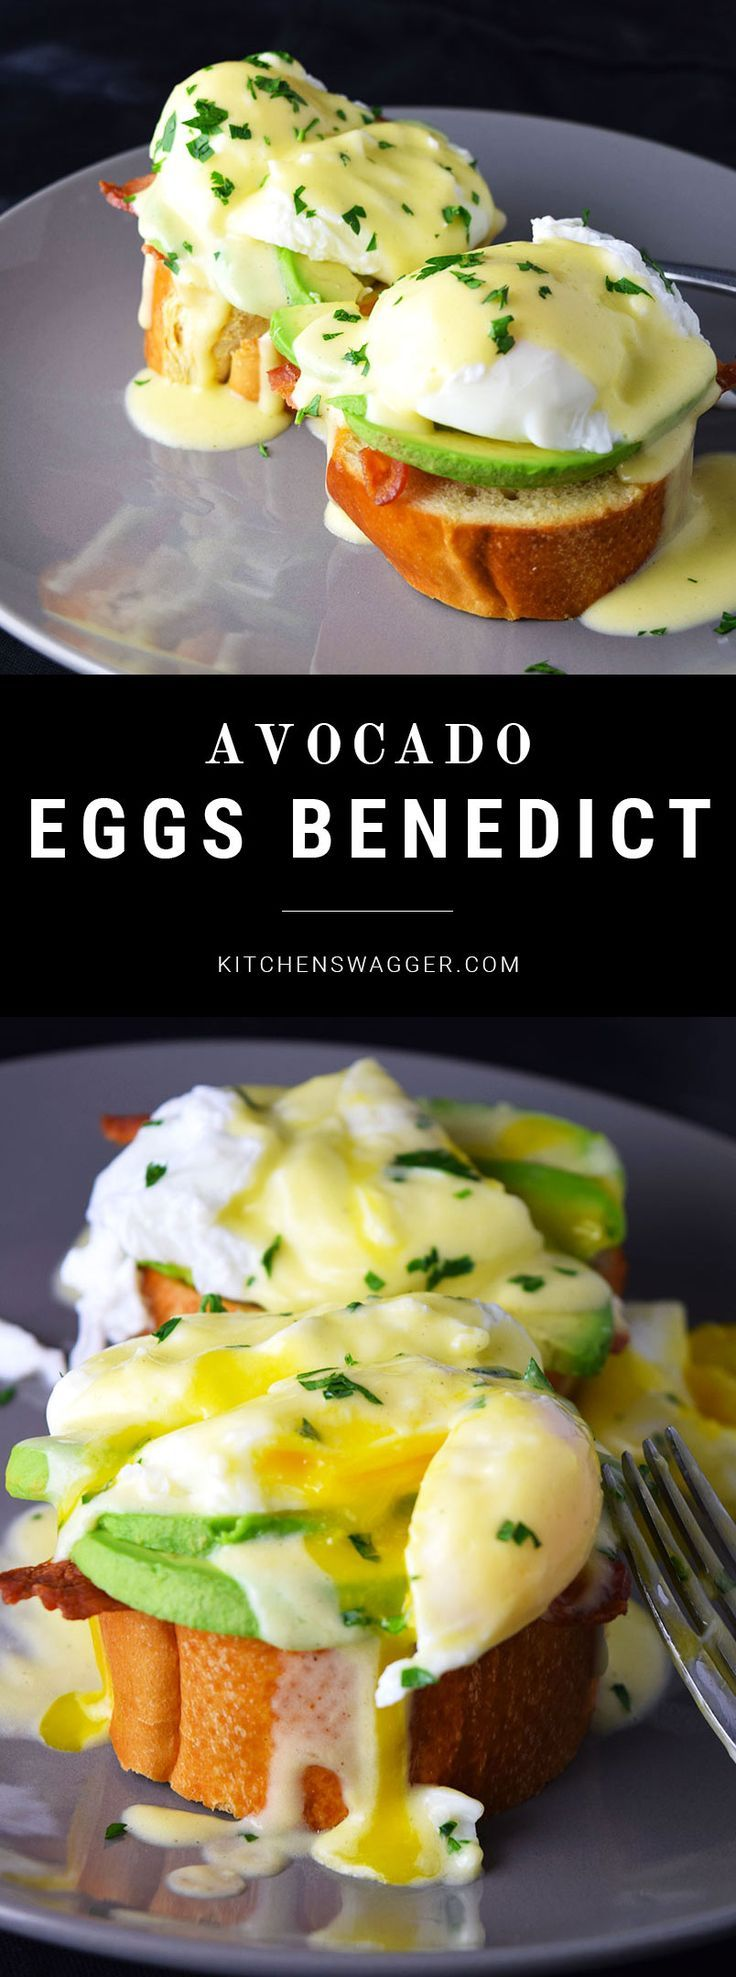 Delicious eggs benedict served on avocado slices, bacon, and french bread.